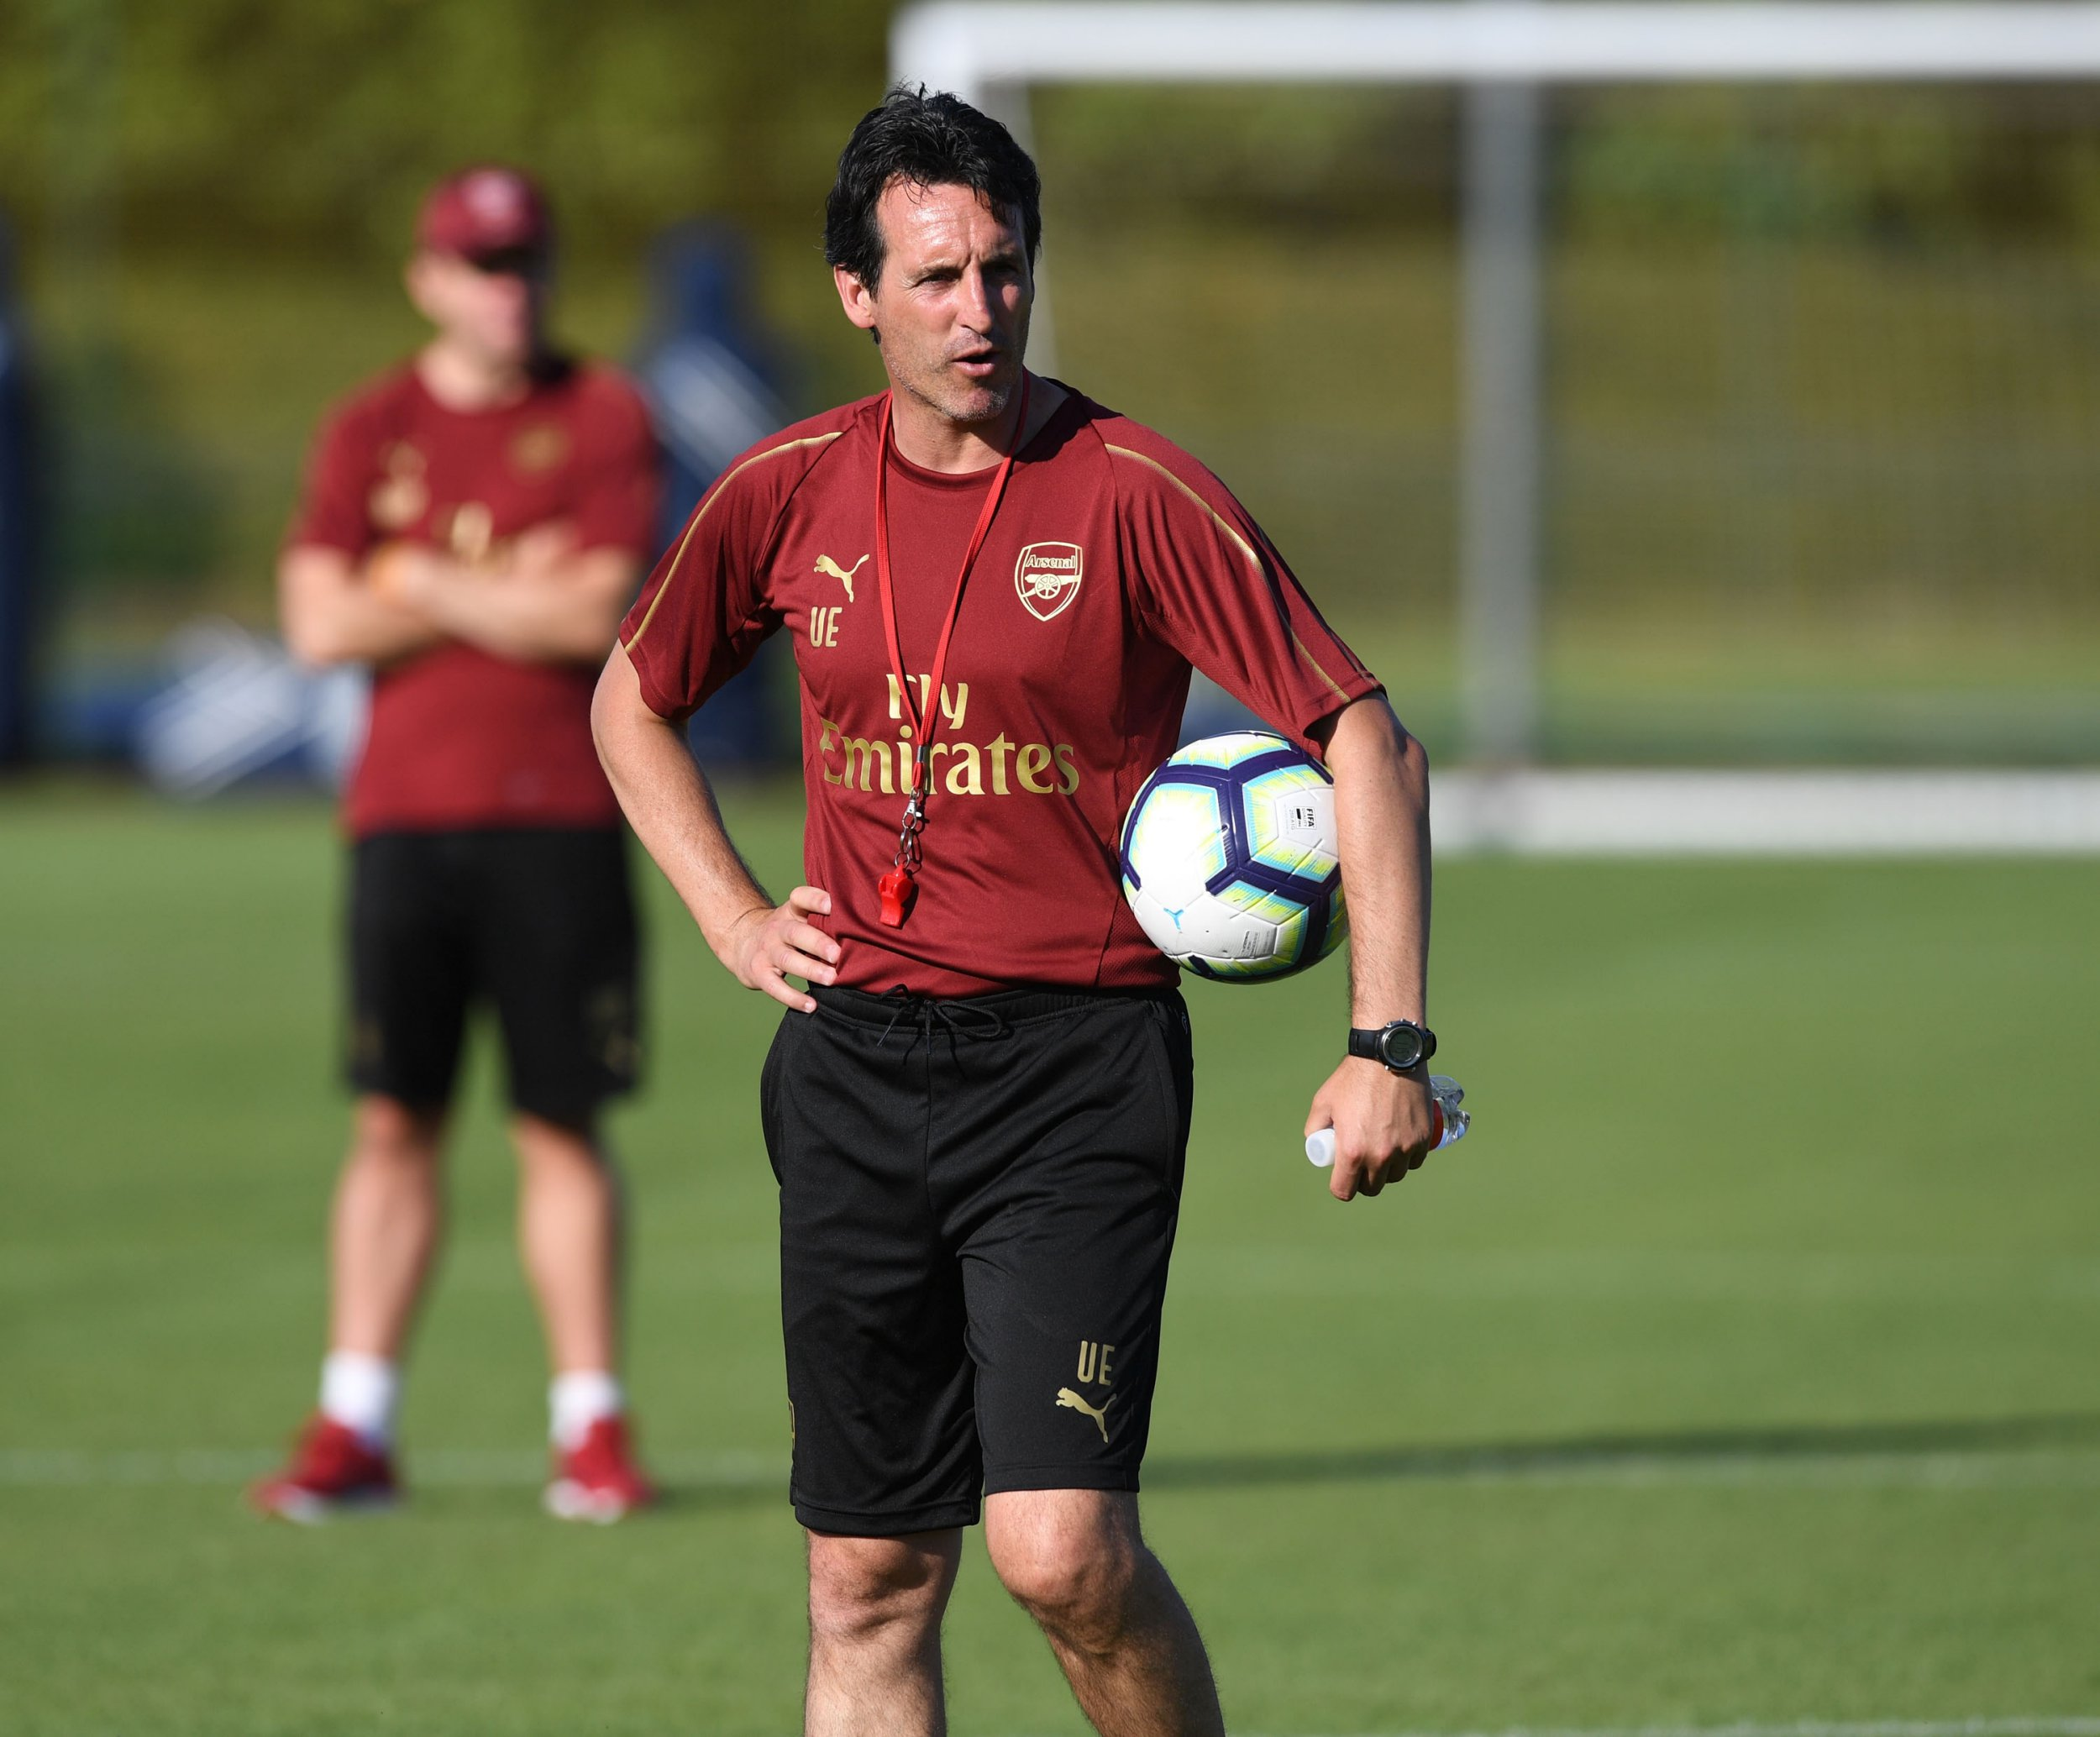 ST ALBANS, ENGLAND - JULY 05: Arsenal Head Coach Unai Emery during a training session at London Colney on July 5, 2018 in St Albans, England. (Photo by Stuart MacFarlane/Arsenal FC via Getty Images)